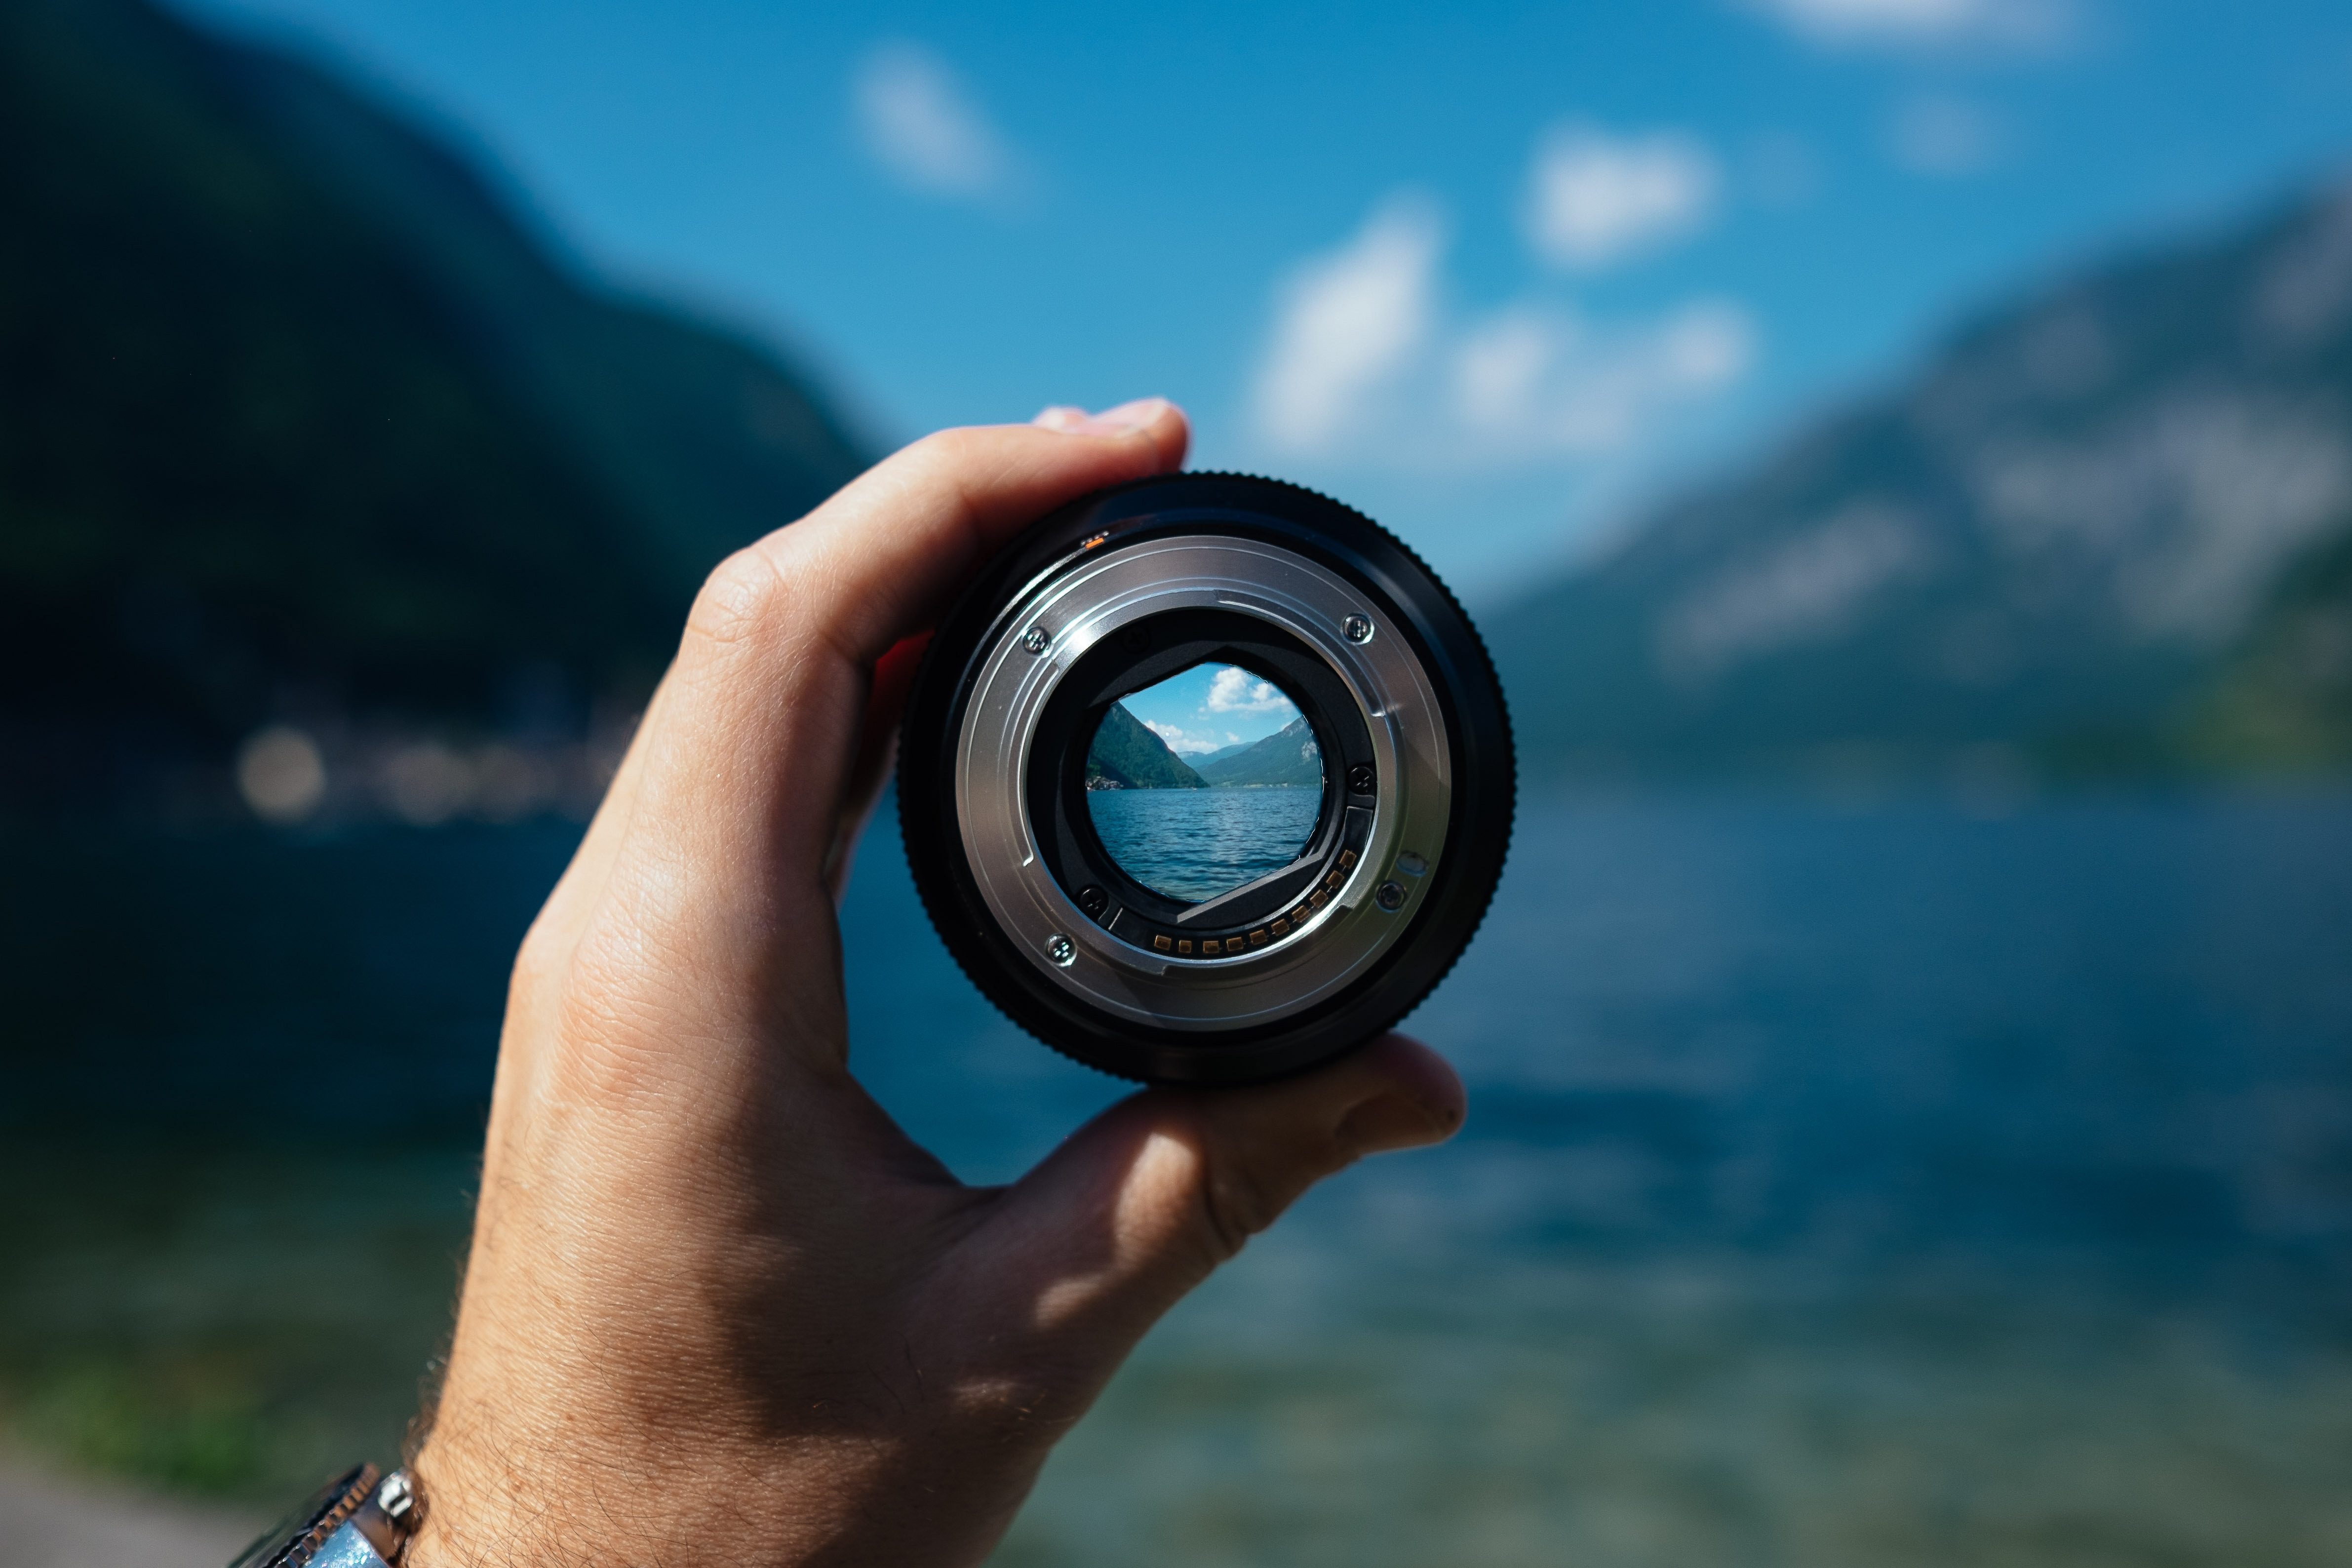 A person holds up a focusing lens in front of a lake and mountains.